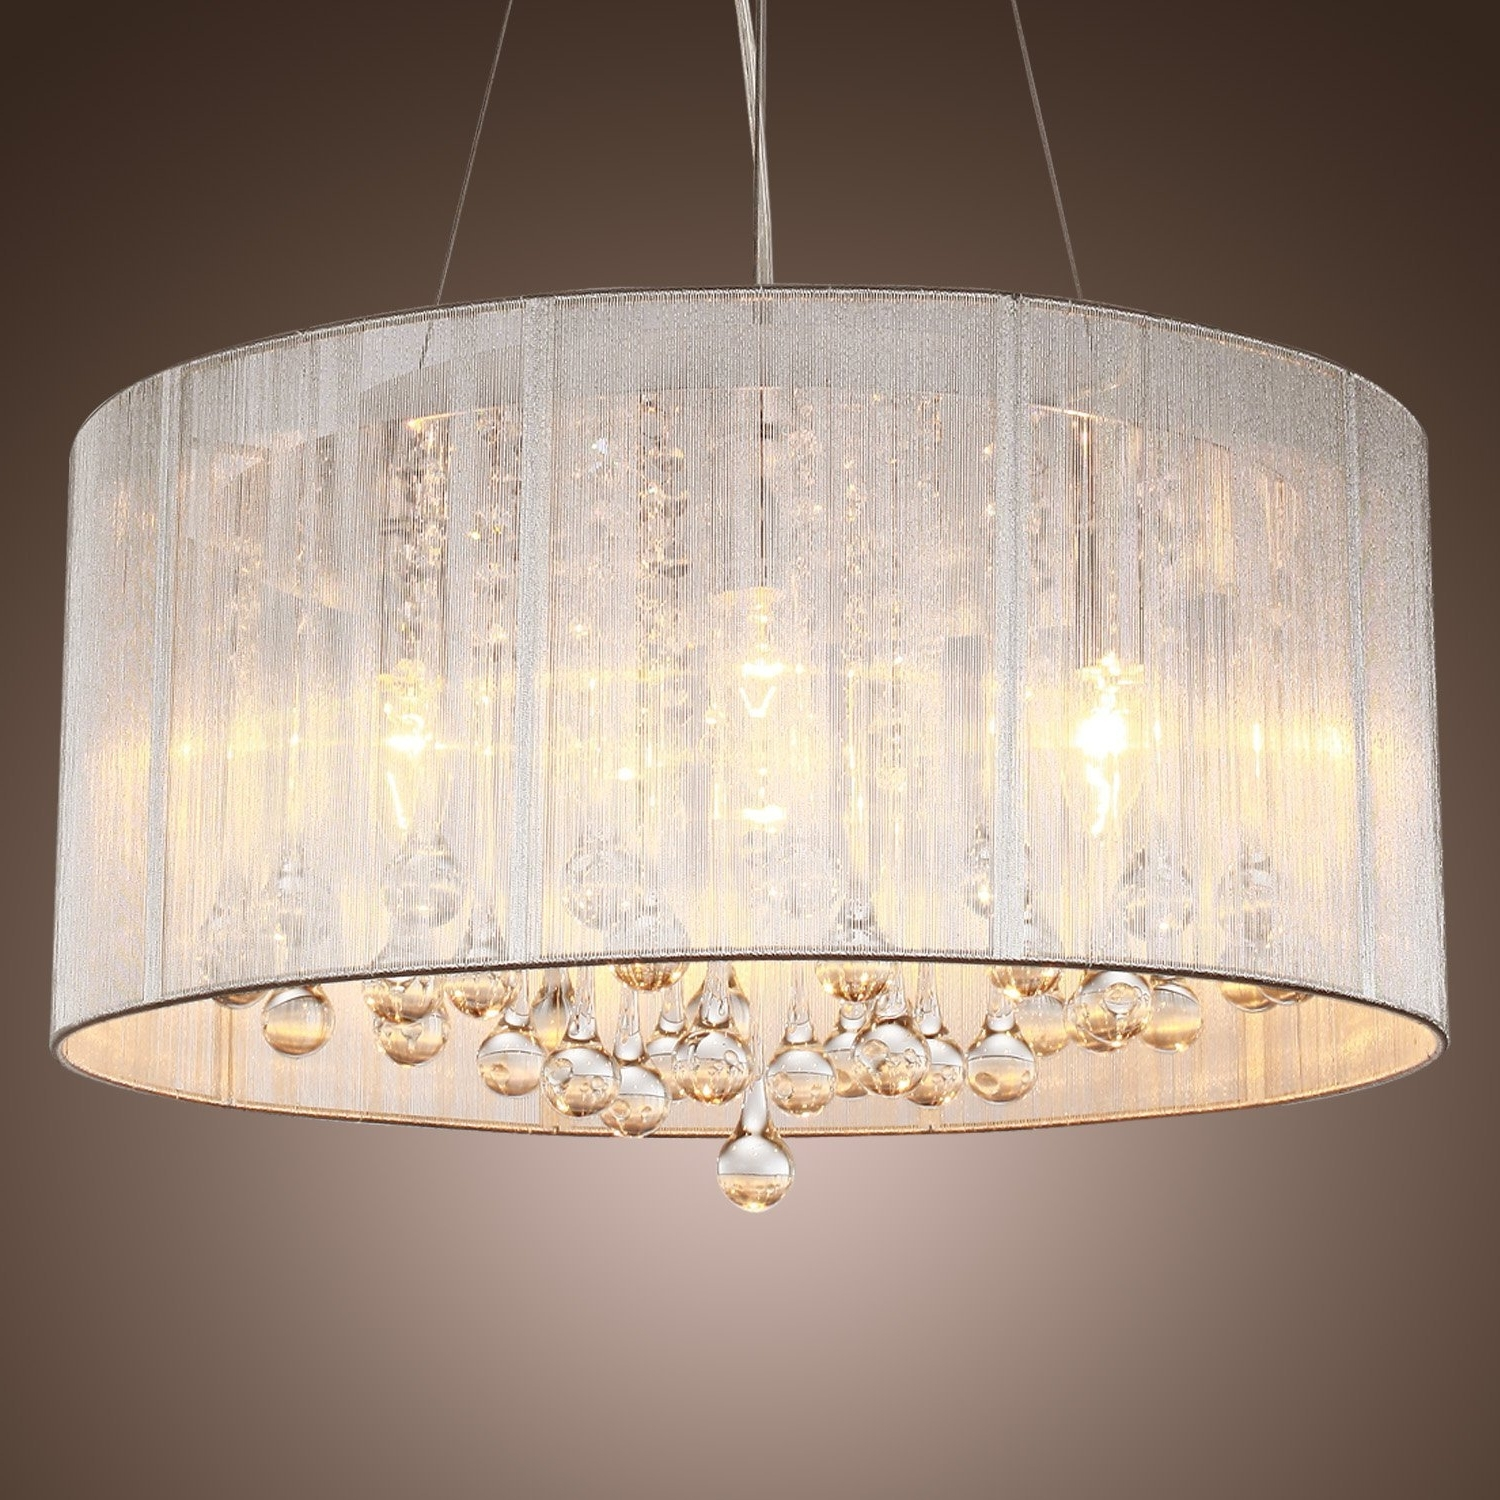 Lightinthebox Modern Silver Crystal Pendant Light In Cylinder Shade With Regard To Newest Cream Crystal Chandelier (View 10 of 15)